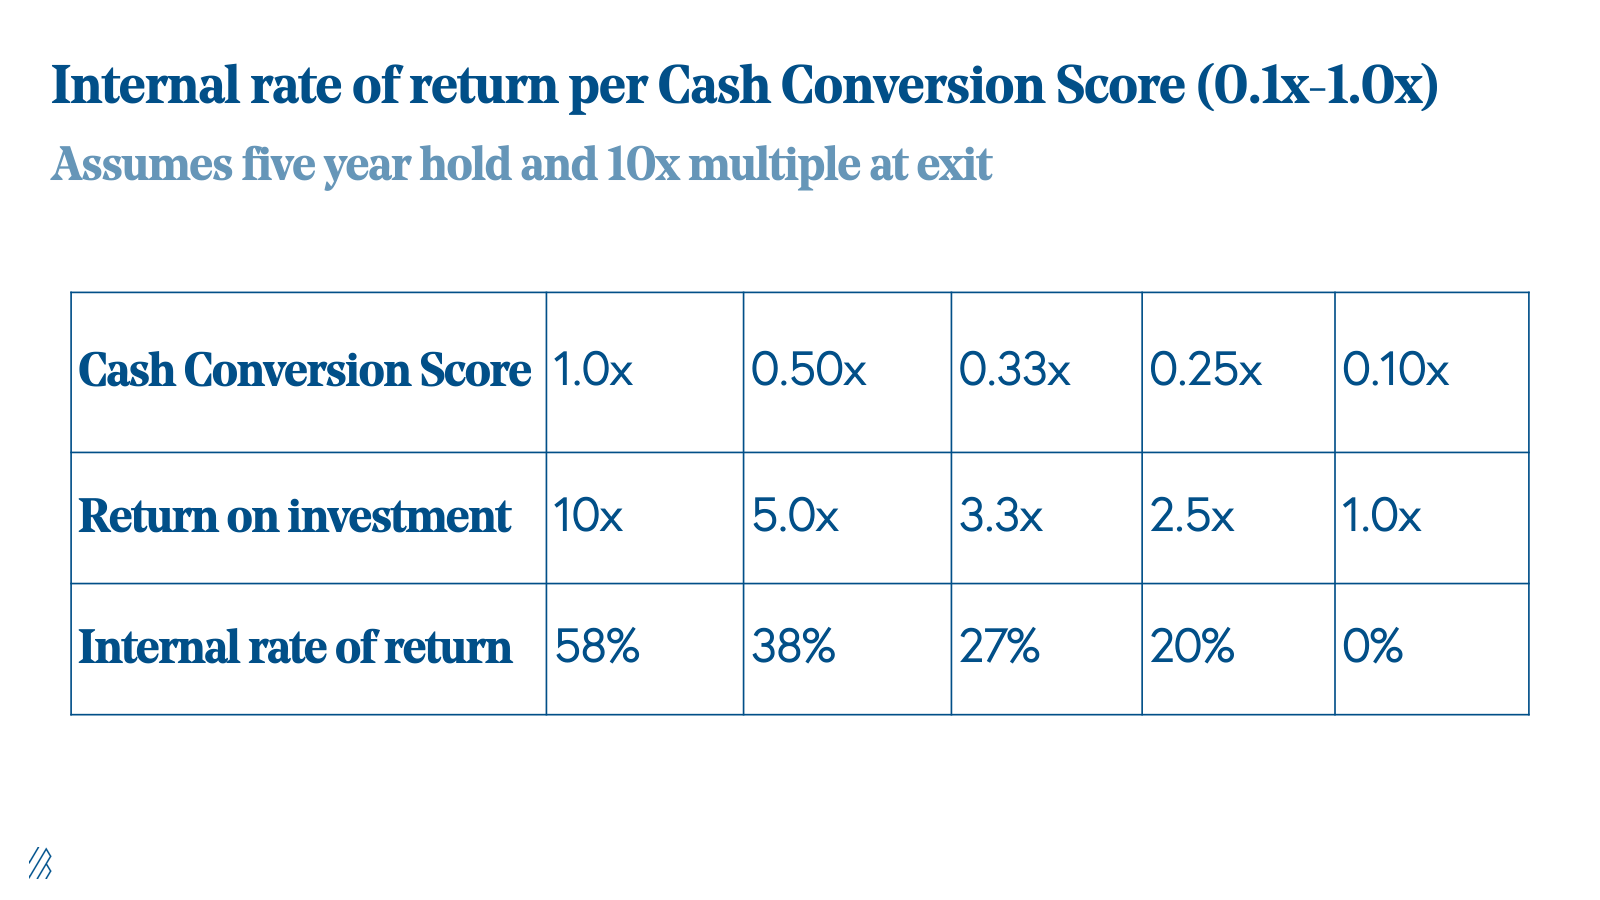 Internal rate of return per Cash Conversion Score